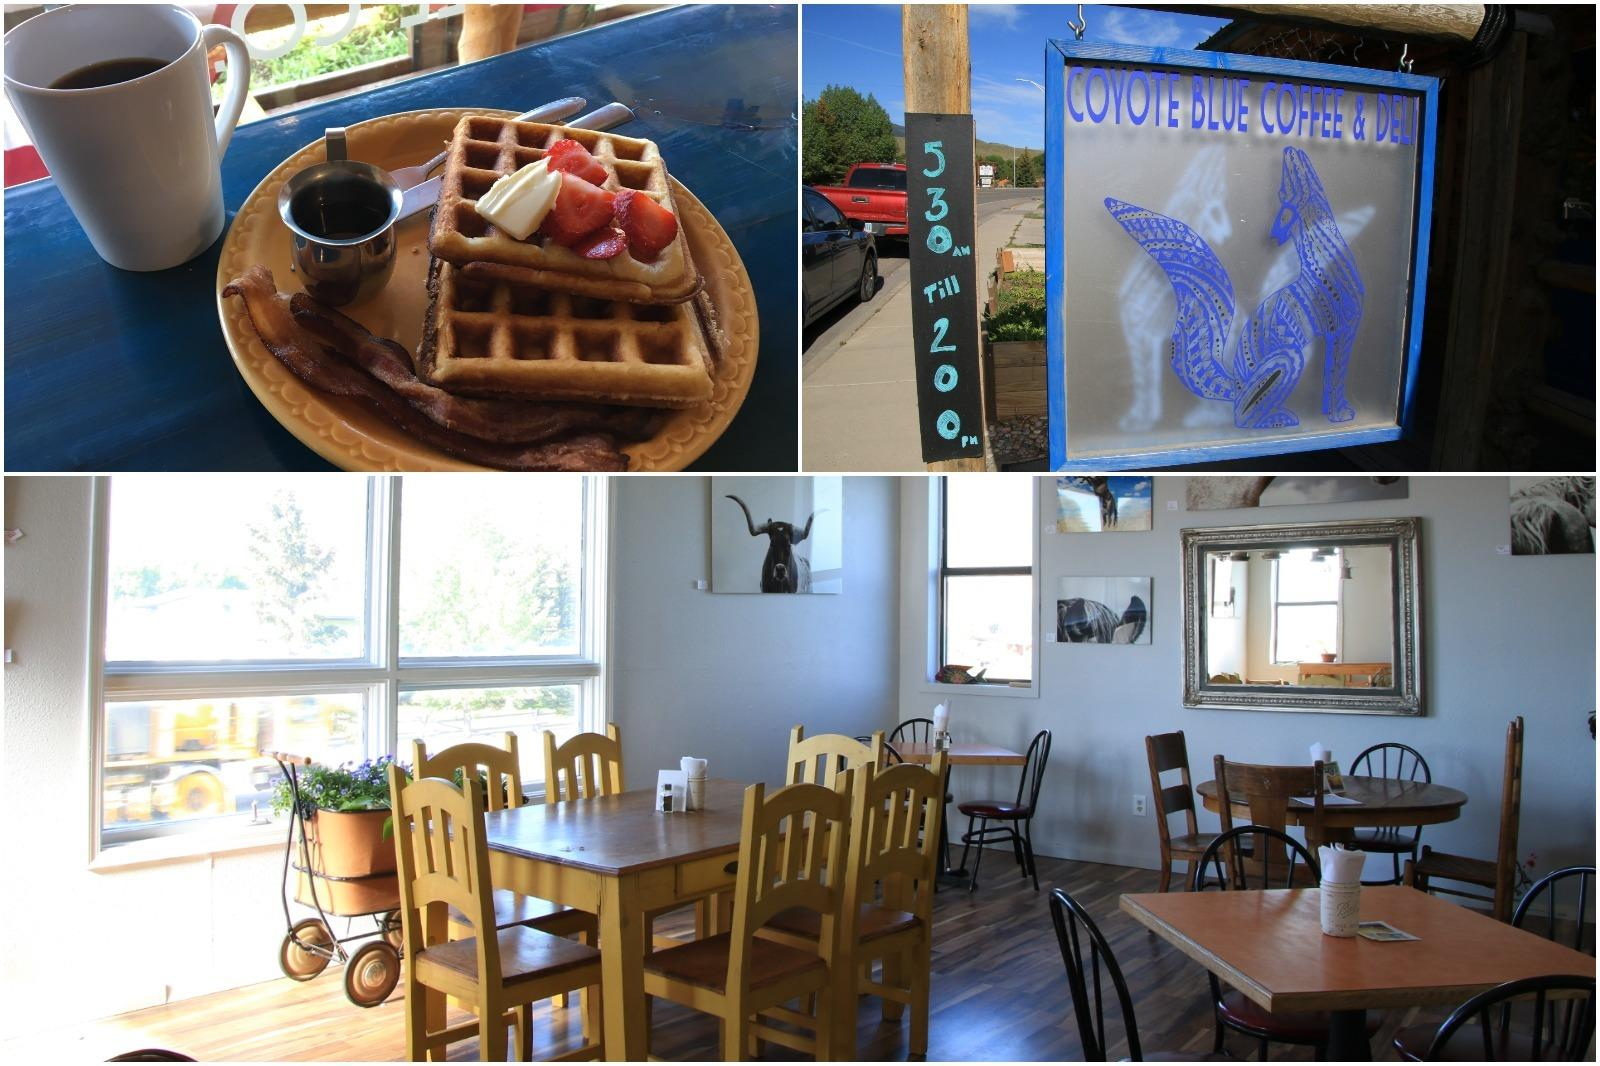 Breakfast at the Coyote Blue Cafe in Dubois Wyoming